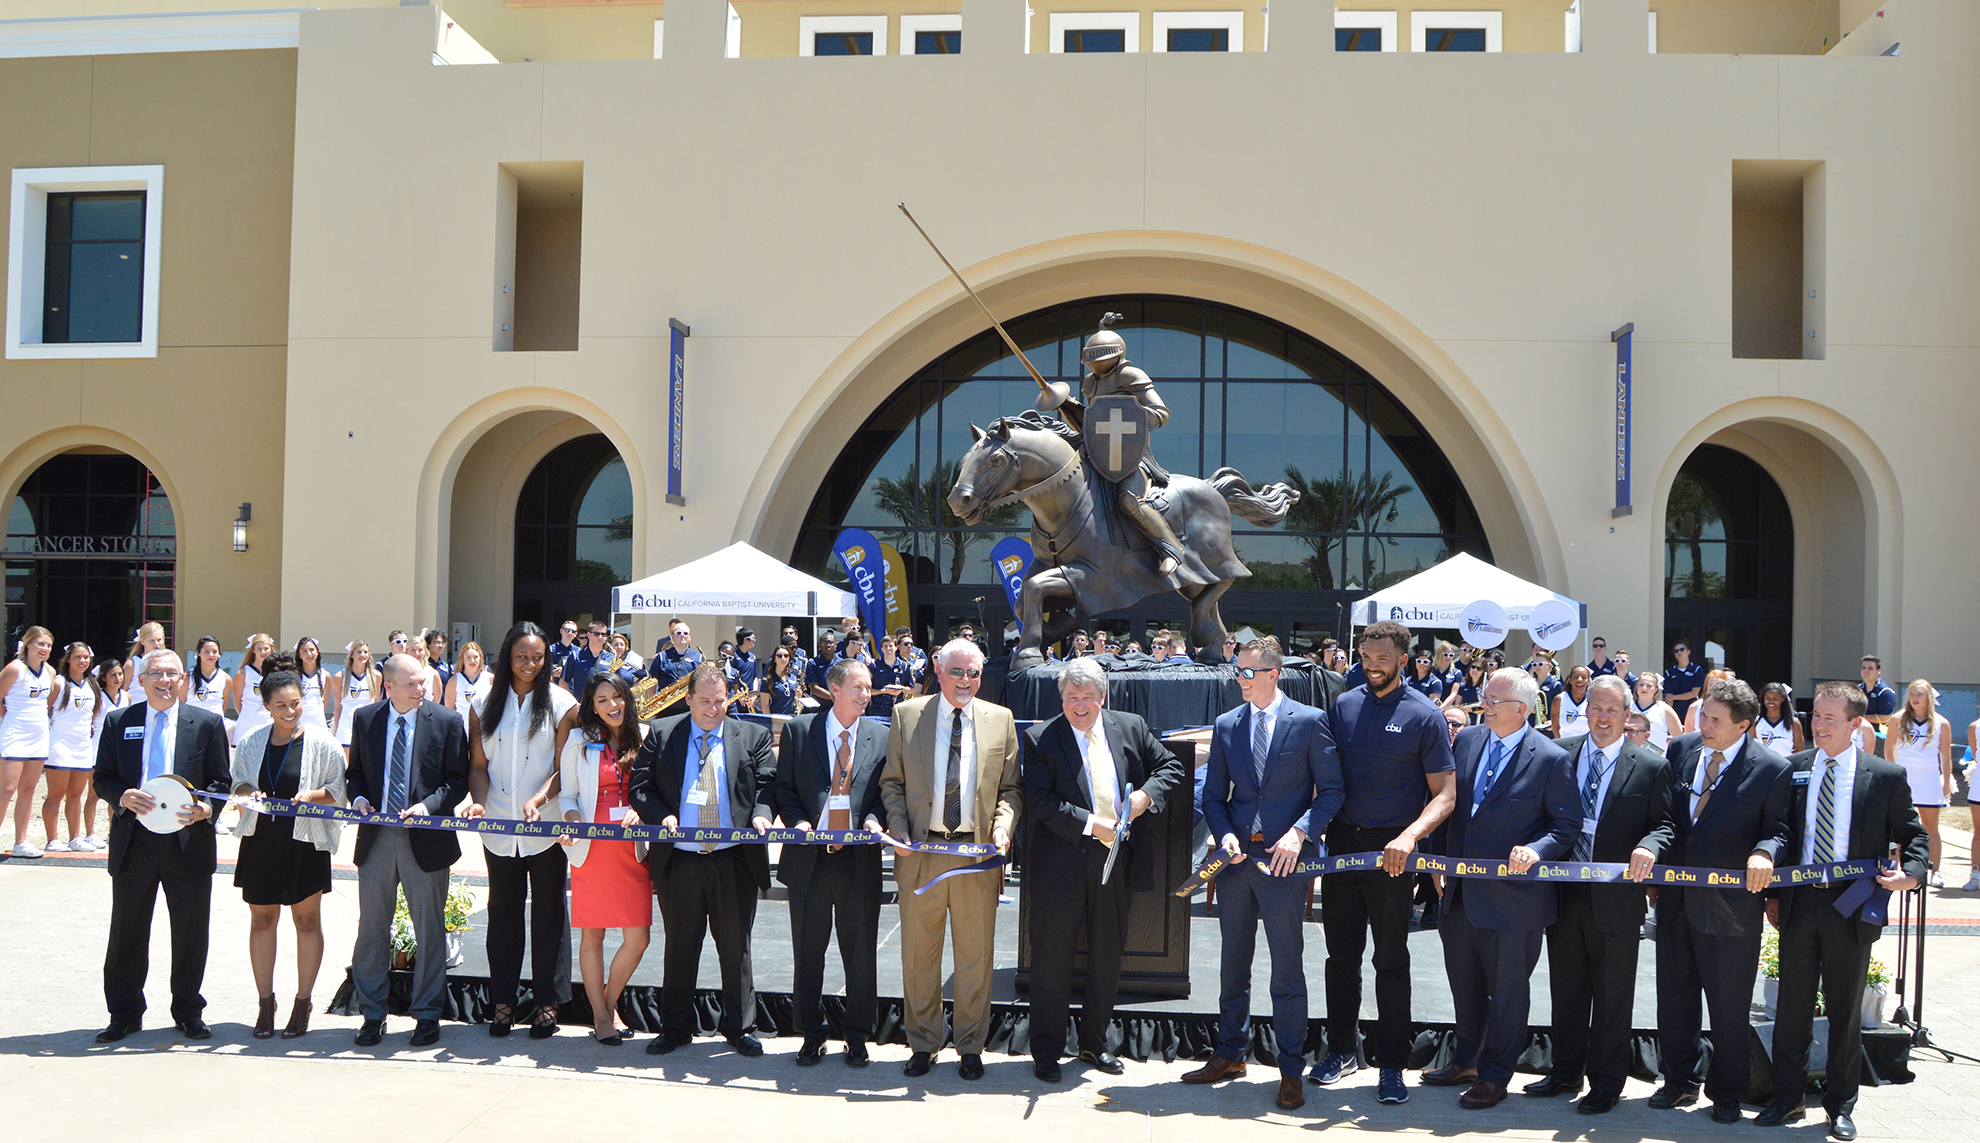 Ribbon-cutting and Dedication Ceremony on May 4